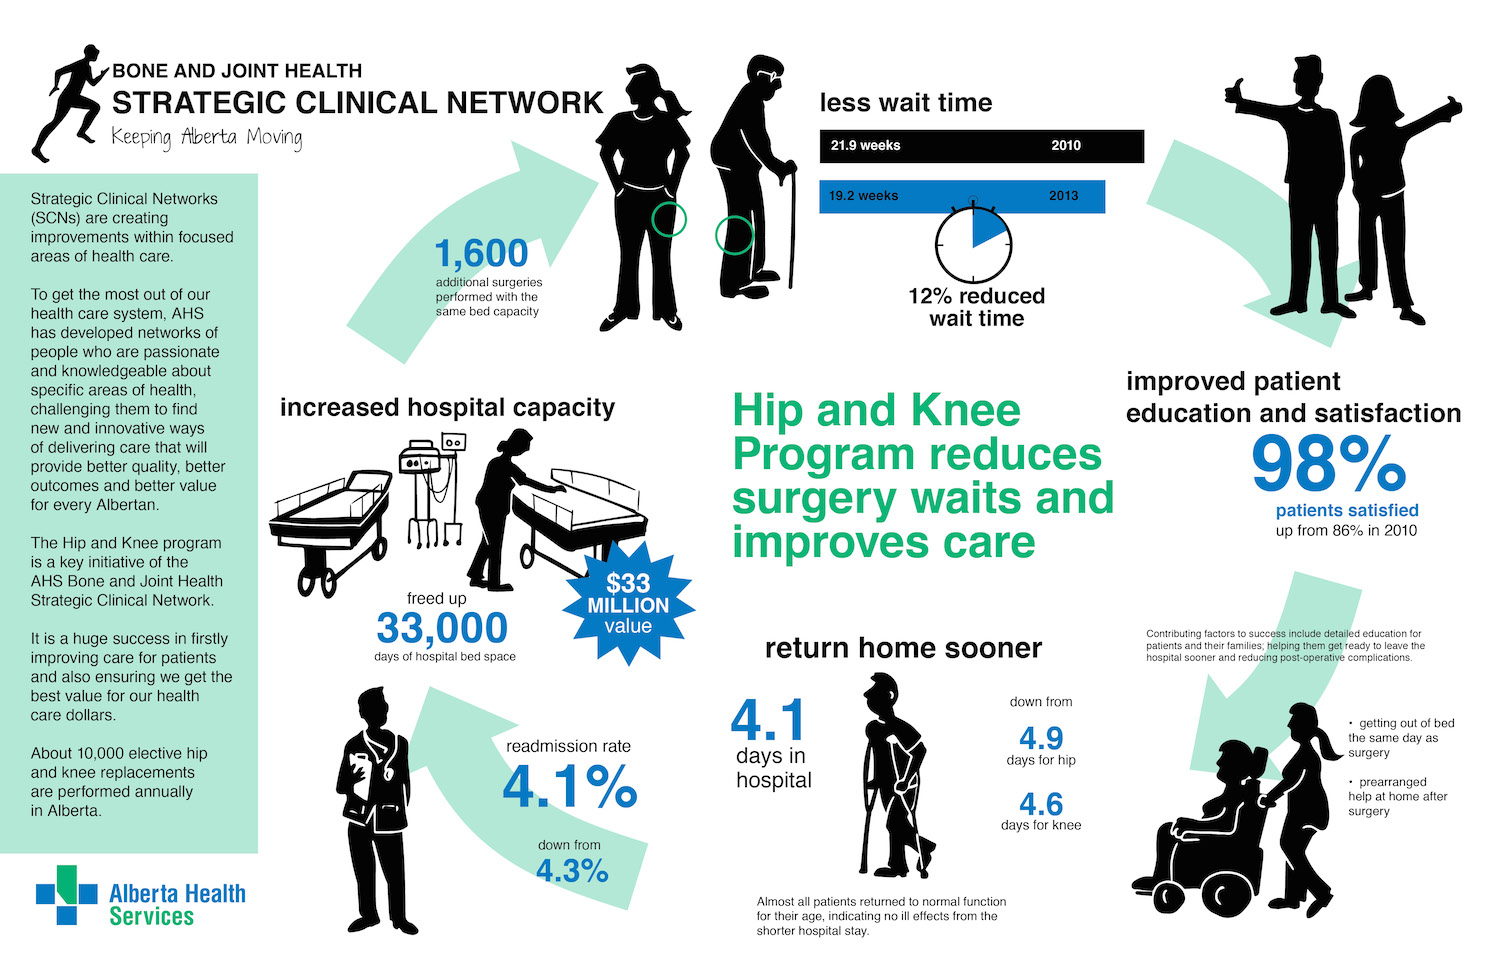 Alberta Health Services infographic for hip and knee statistics, knowledge transfer, health care